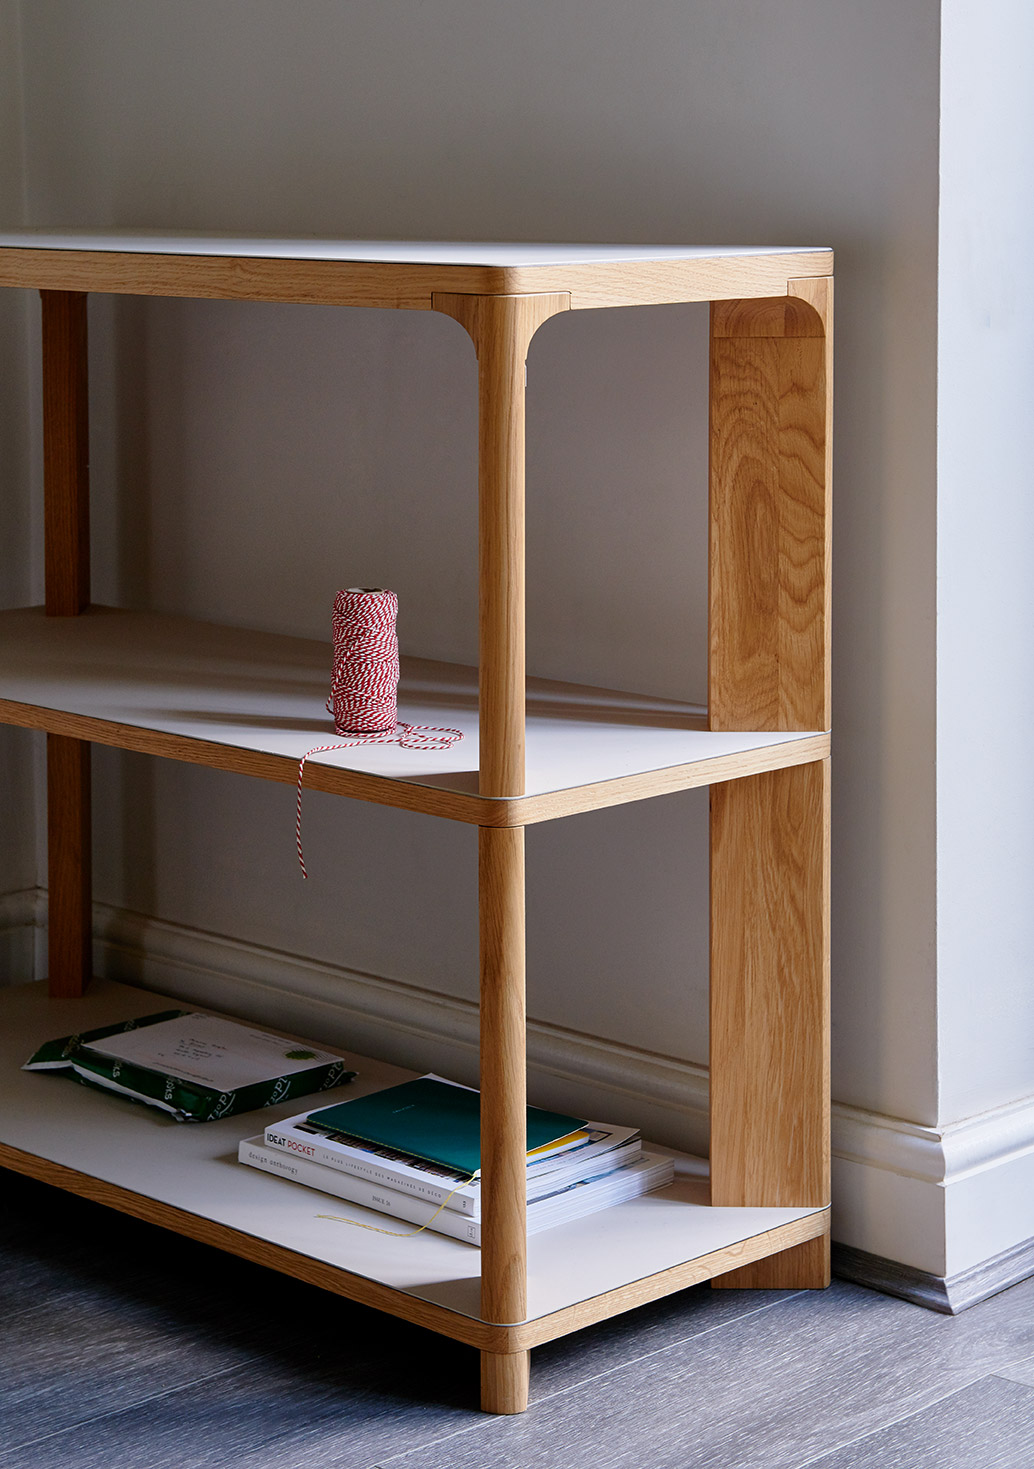 Another-Brand-Oak-and-Mushroom-Legna-Console-by-Emile-Jones.jpg